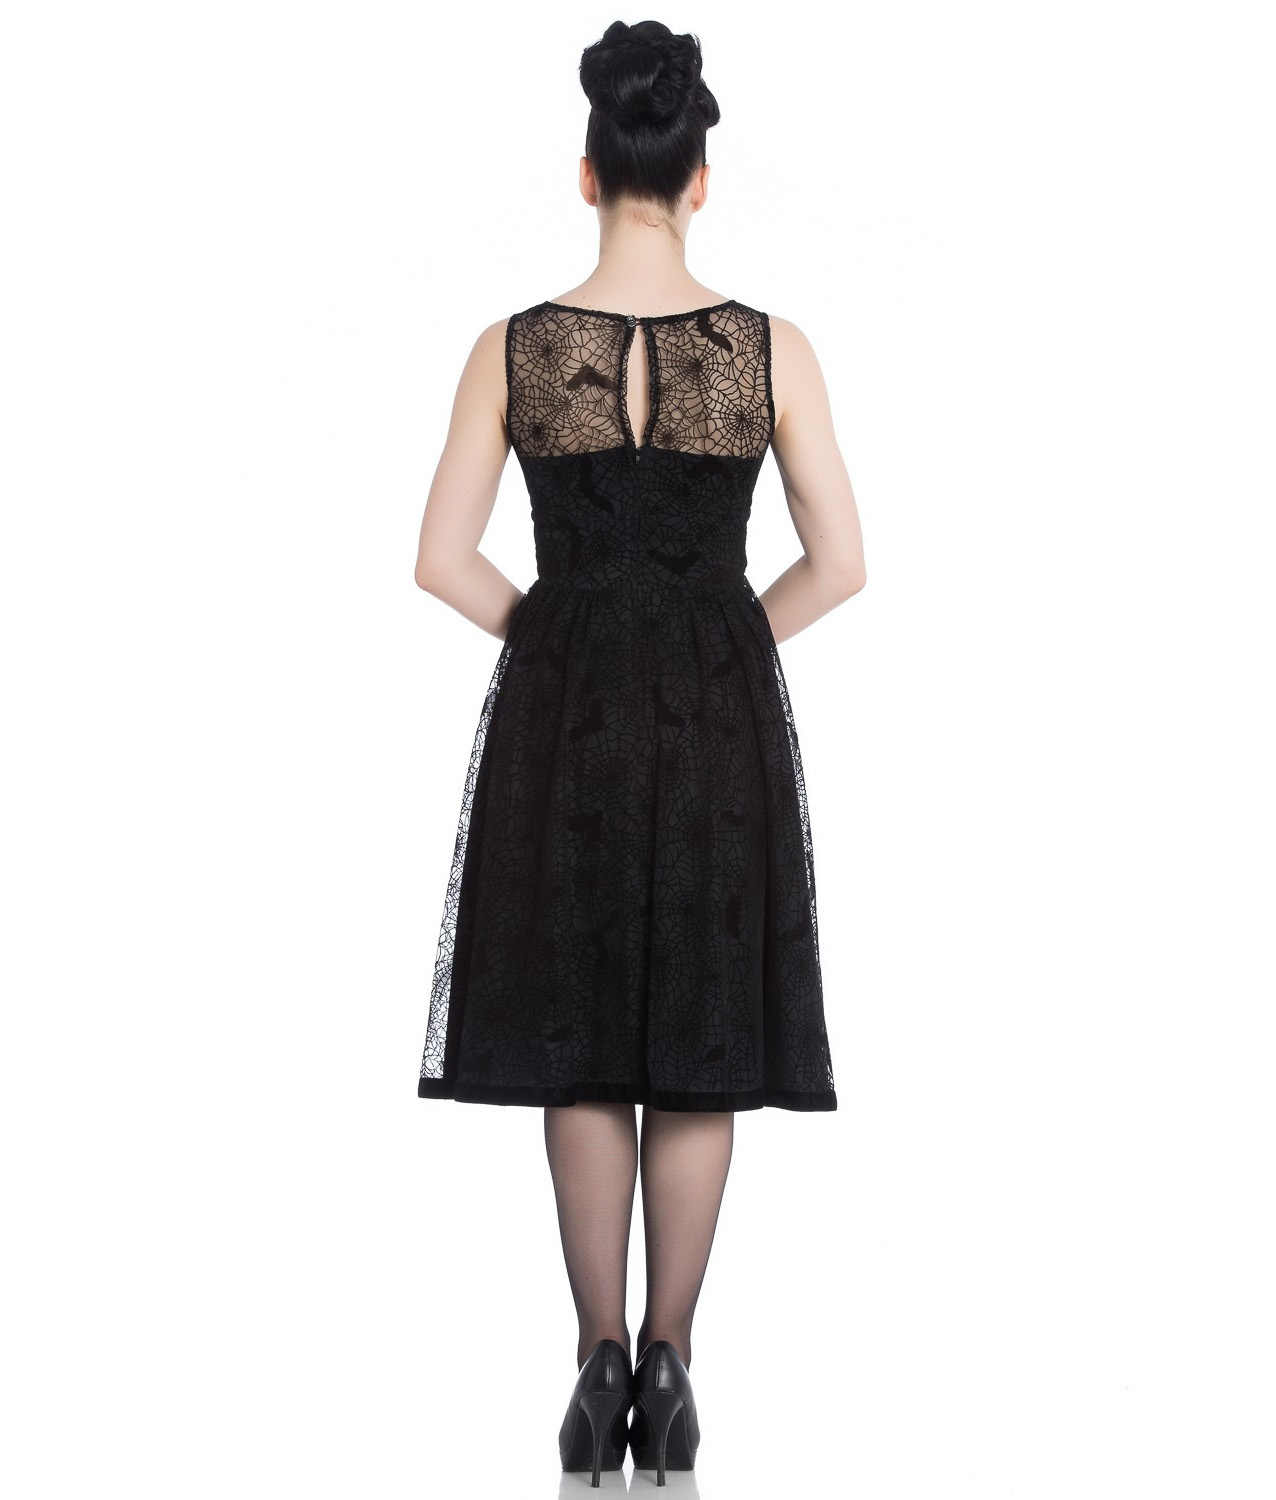 Hell-Bunny-50s-Black-Gothic-Net-Dress-Witchy-AMARANDE-Spiders-Bats-All-Sizes thumbnail 5